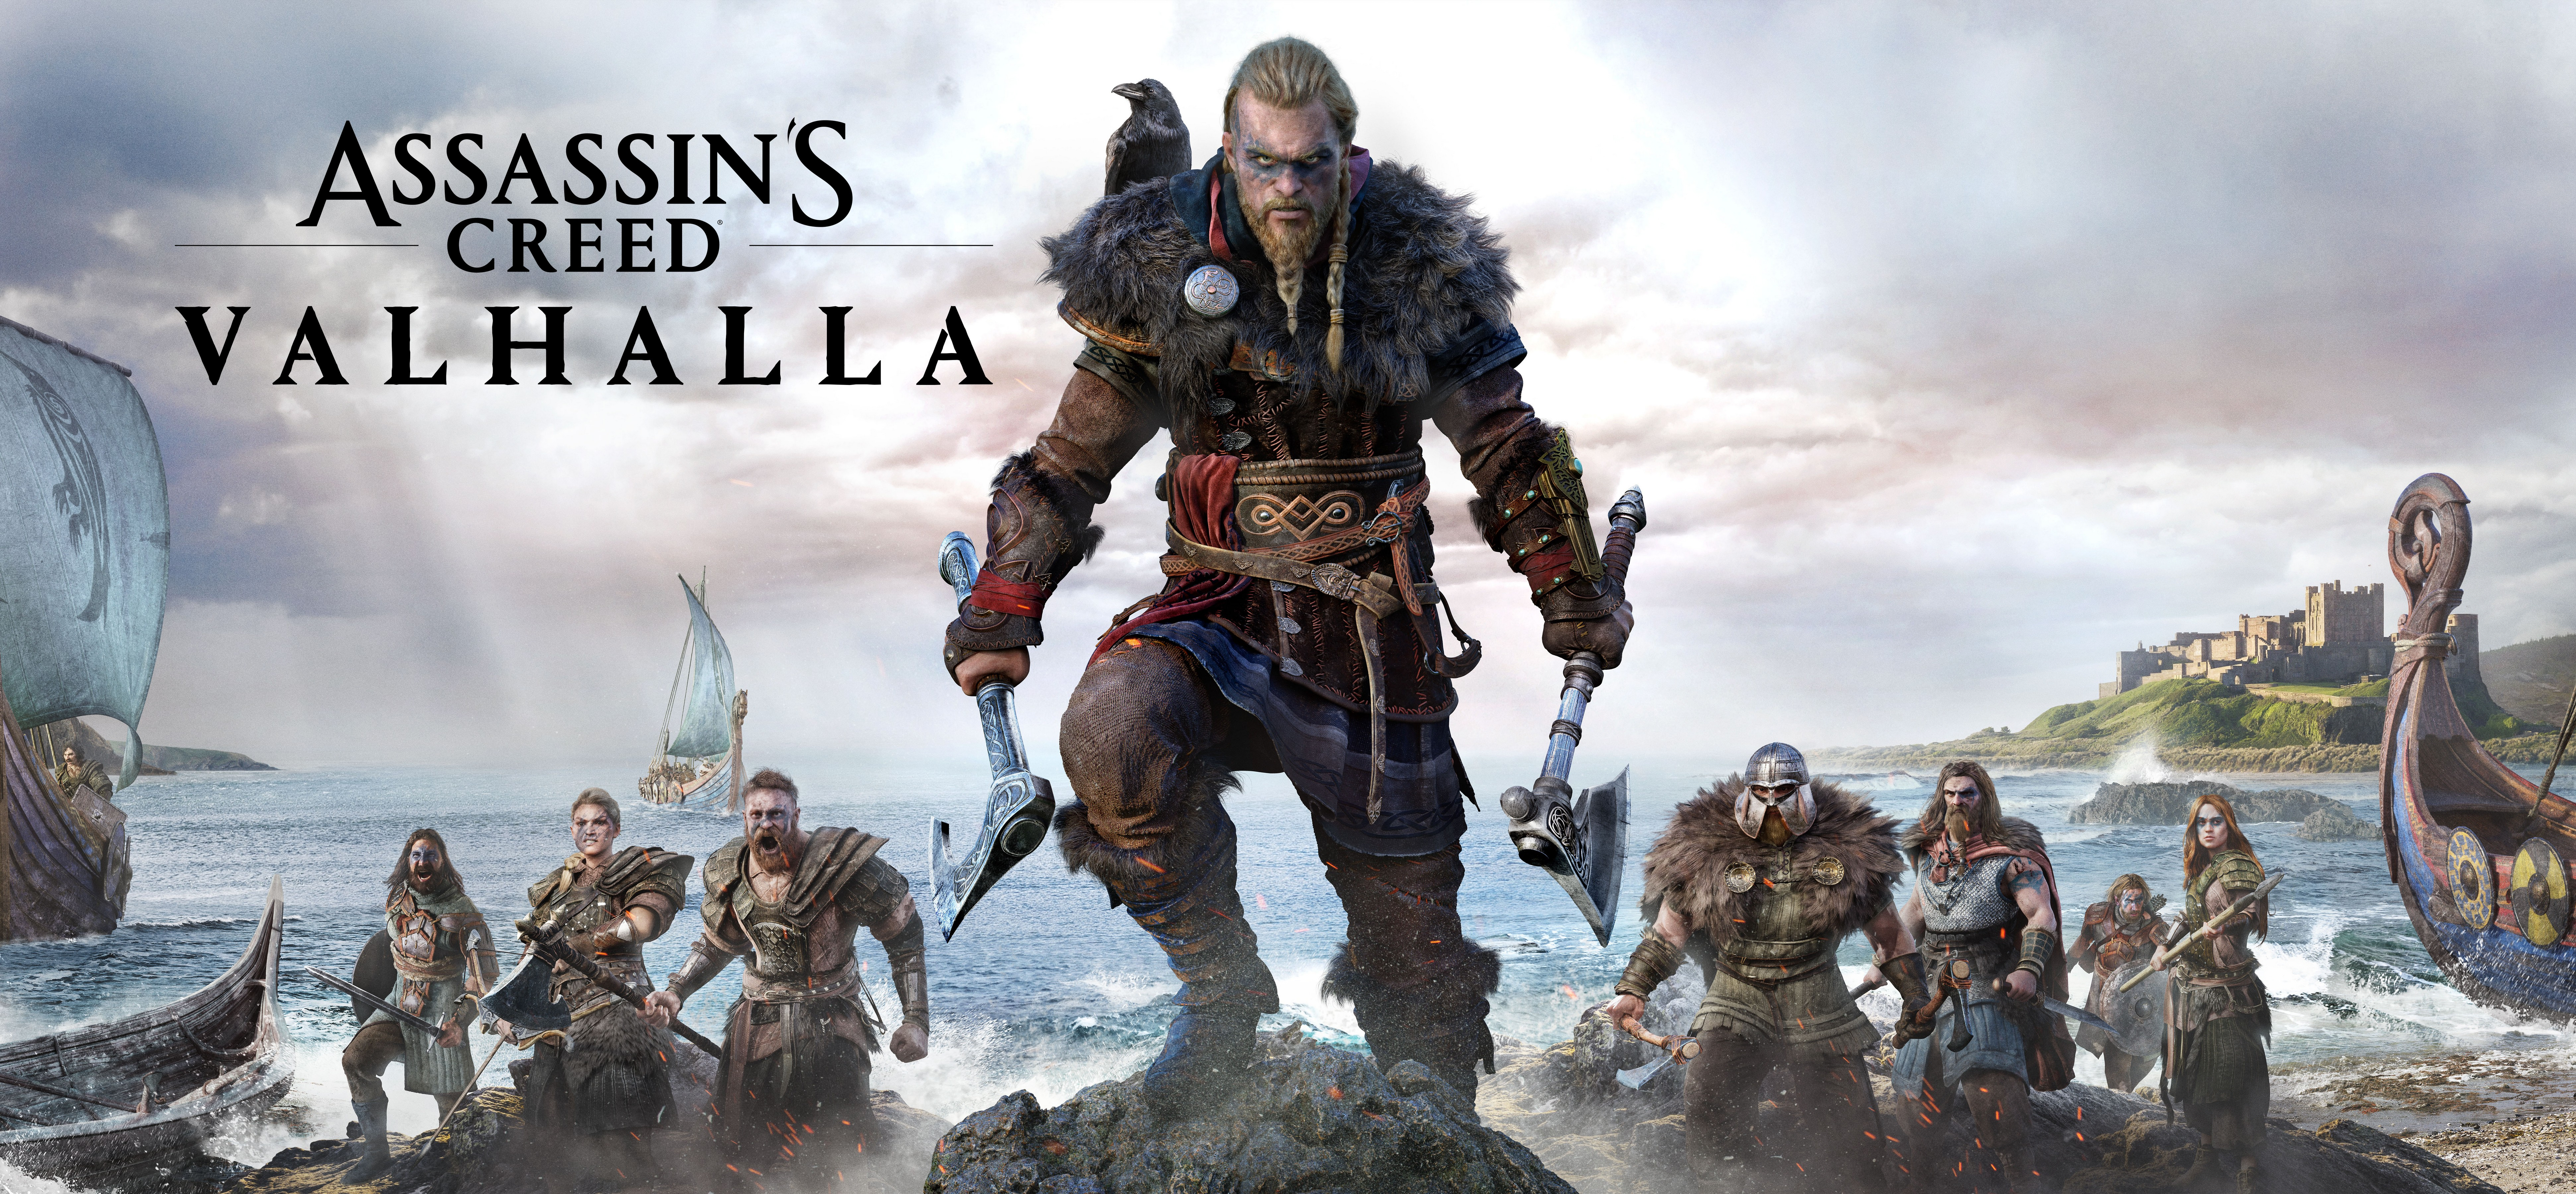 General 7766x3601 Assassin's Creed: Valhalla viking video games video game art digital art Axe boat ultrawide ultra-wide